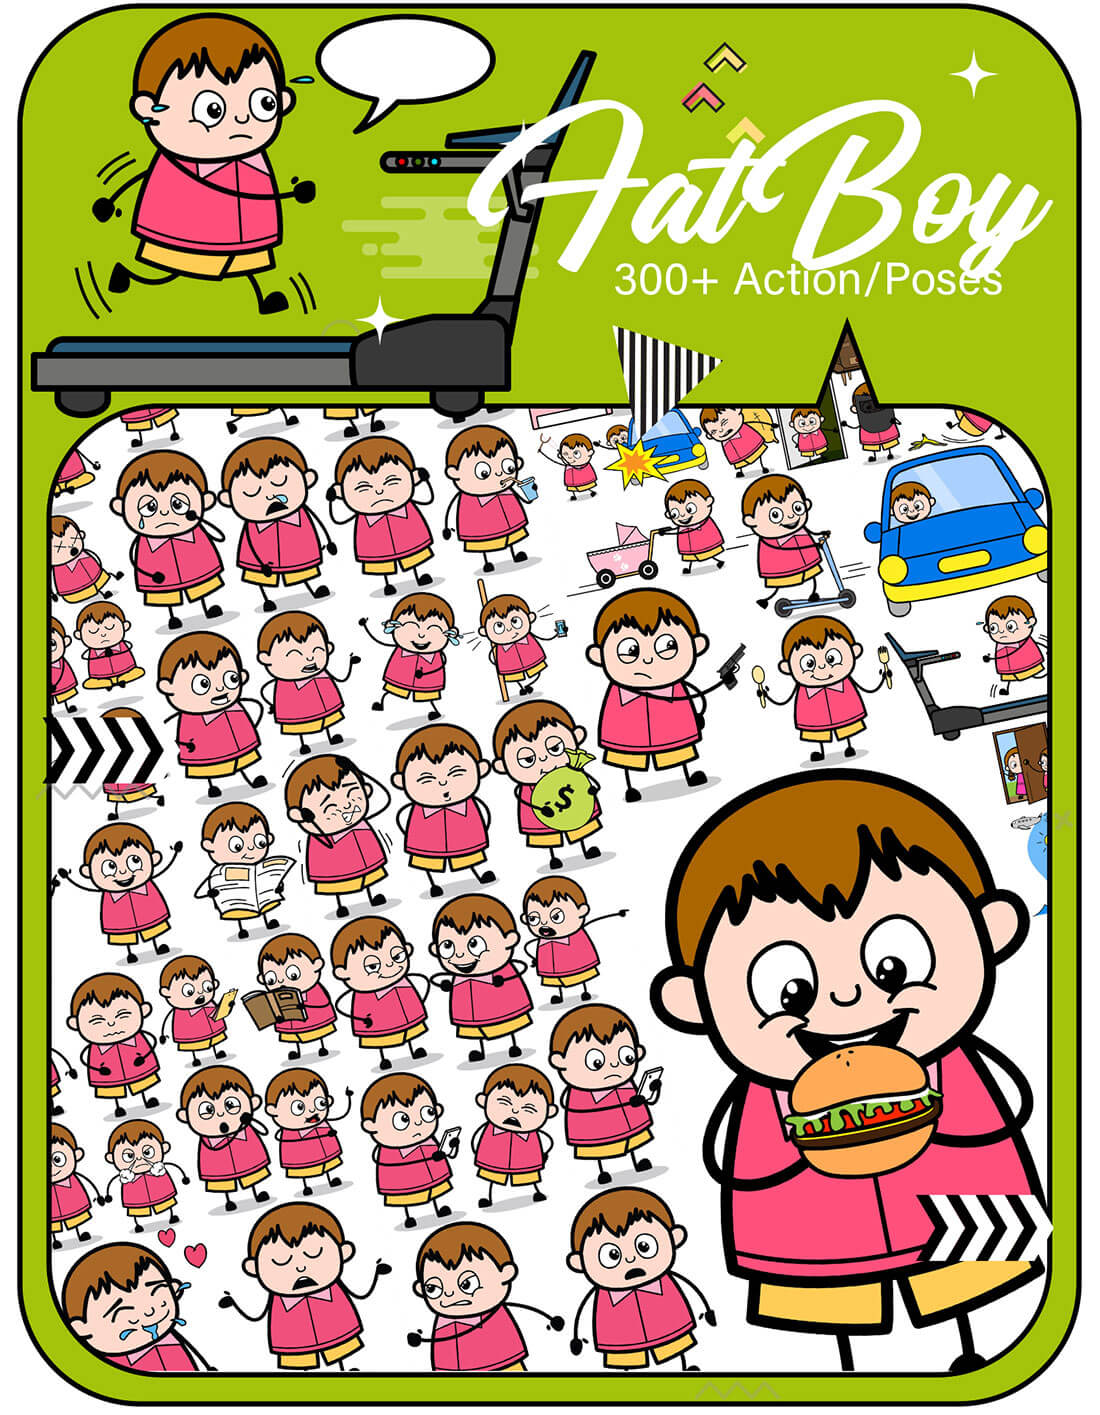 011-Fat-Boy-Vector-Cartoon-Characters.jpg